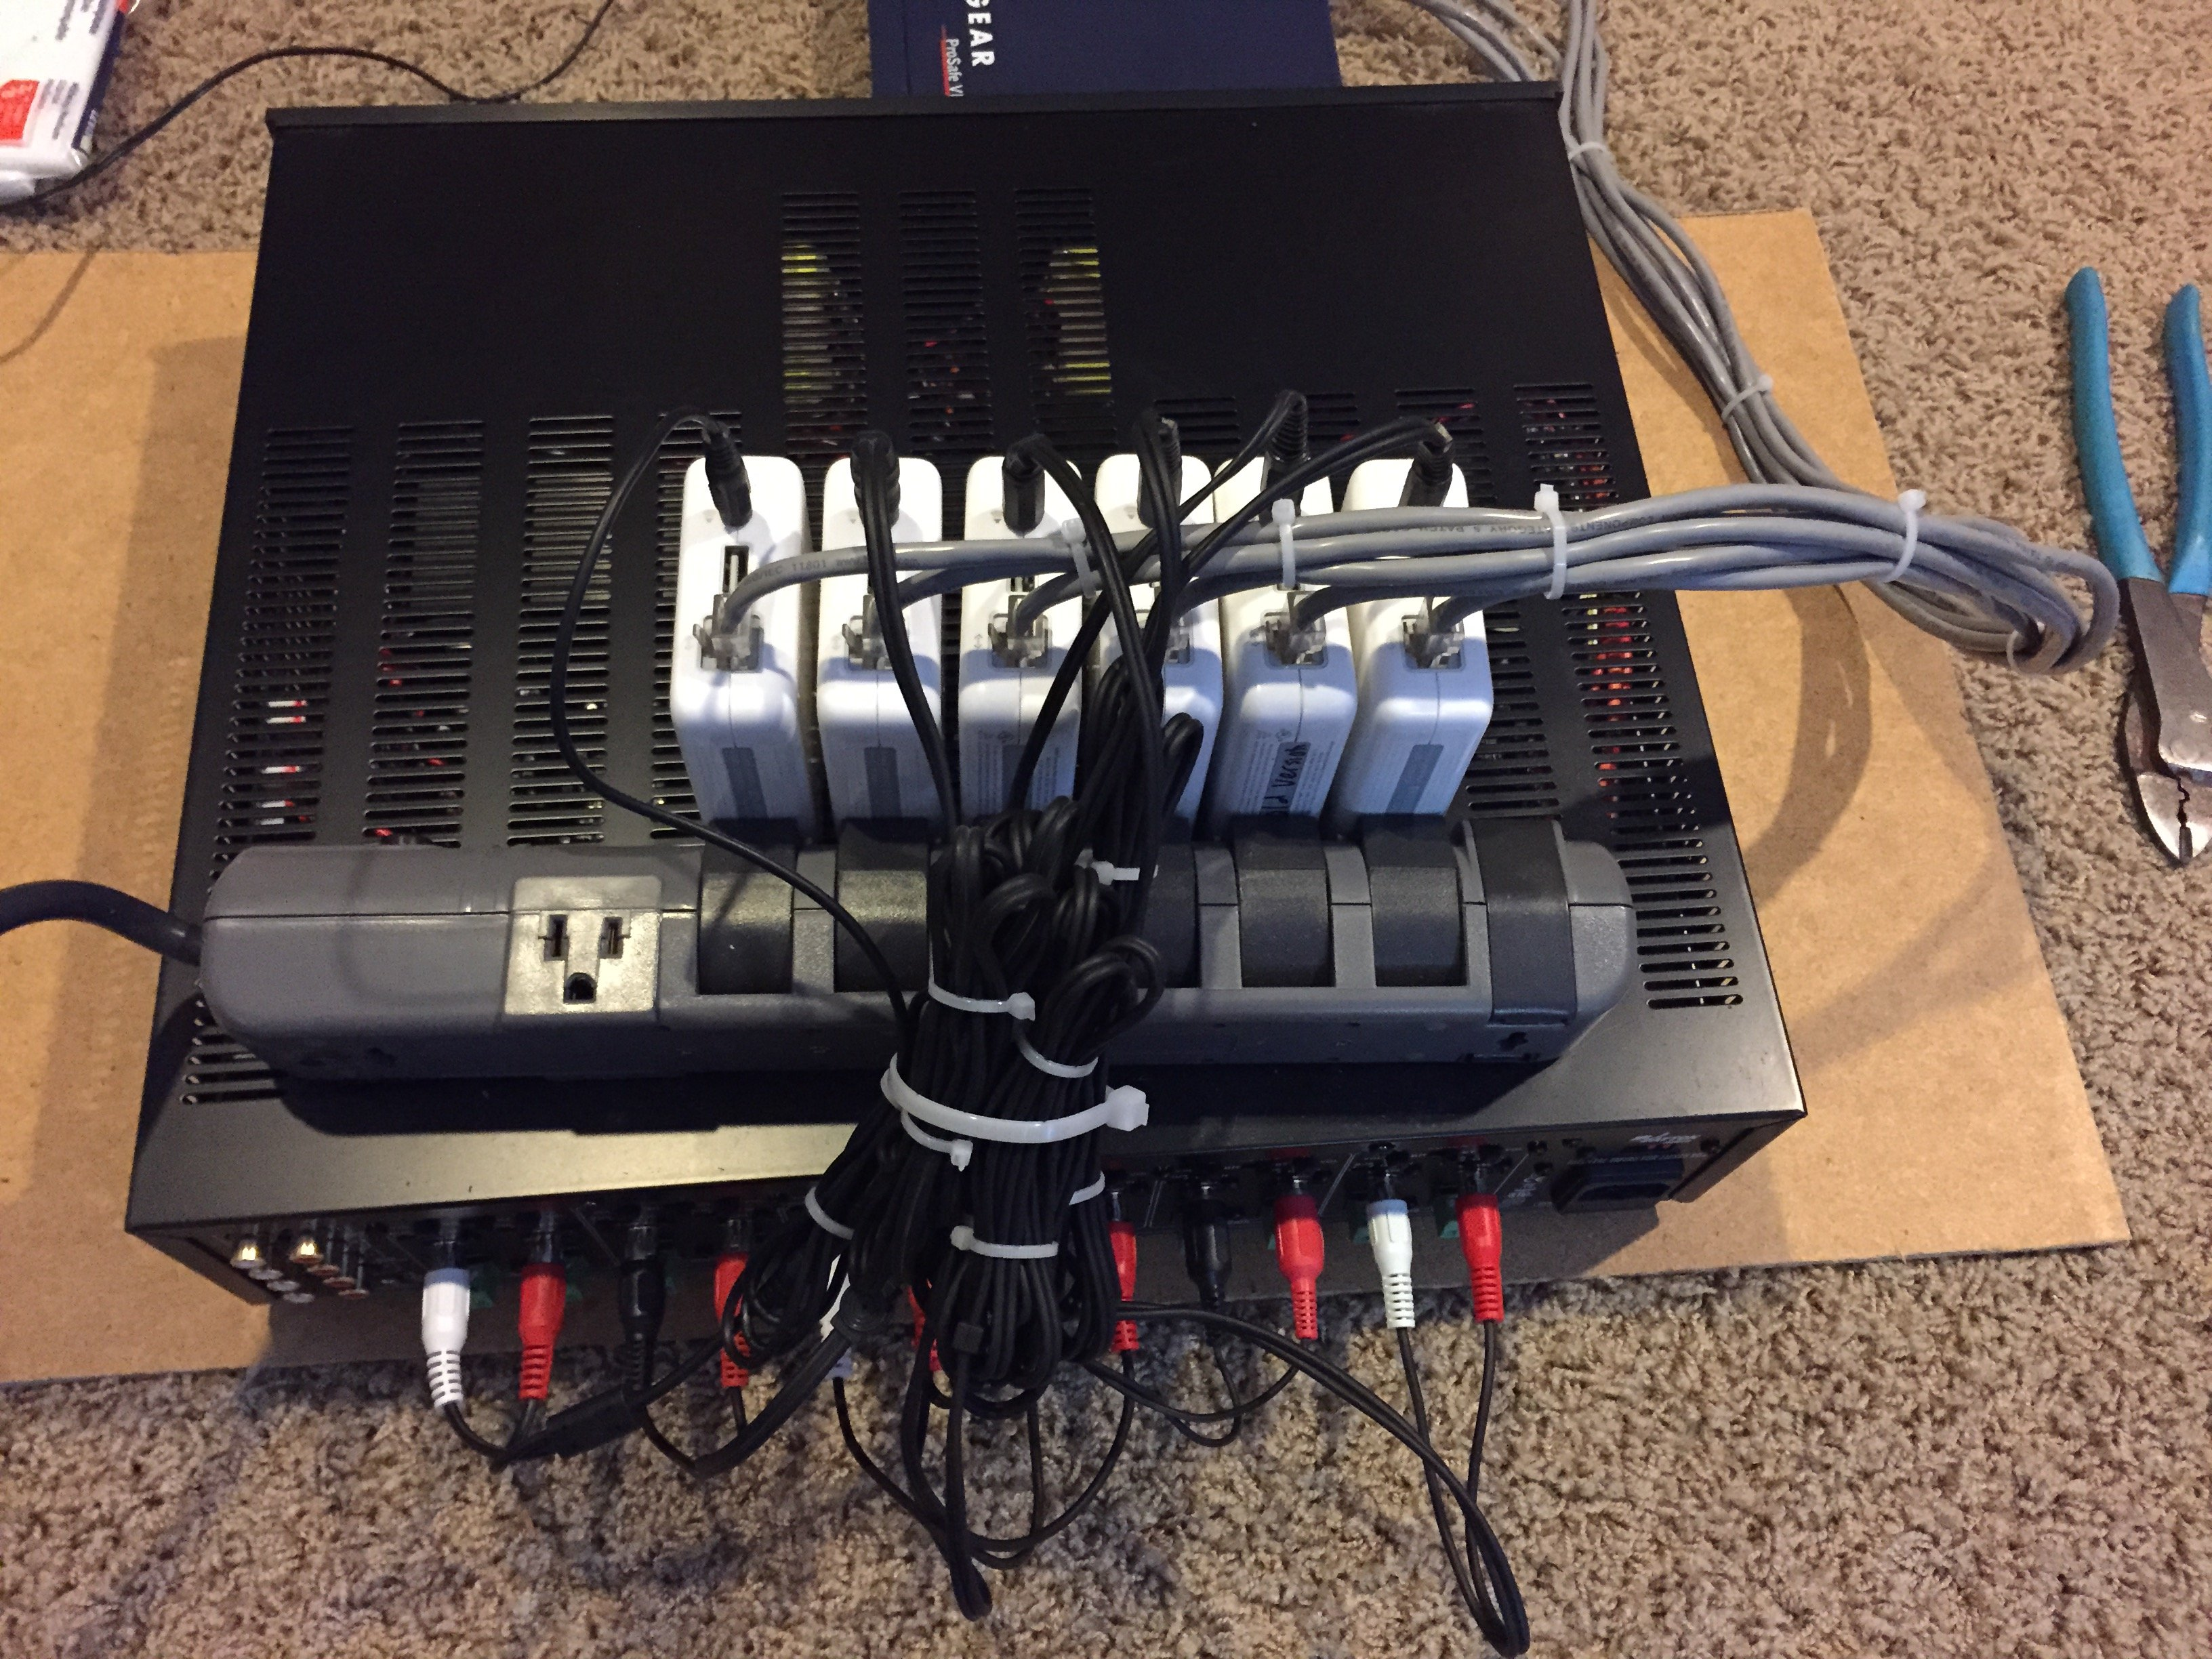 Apple Airplay Multi Room Setup 6 Zones Airport Express Wiring Home Audio Equipment